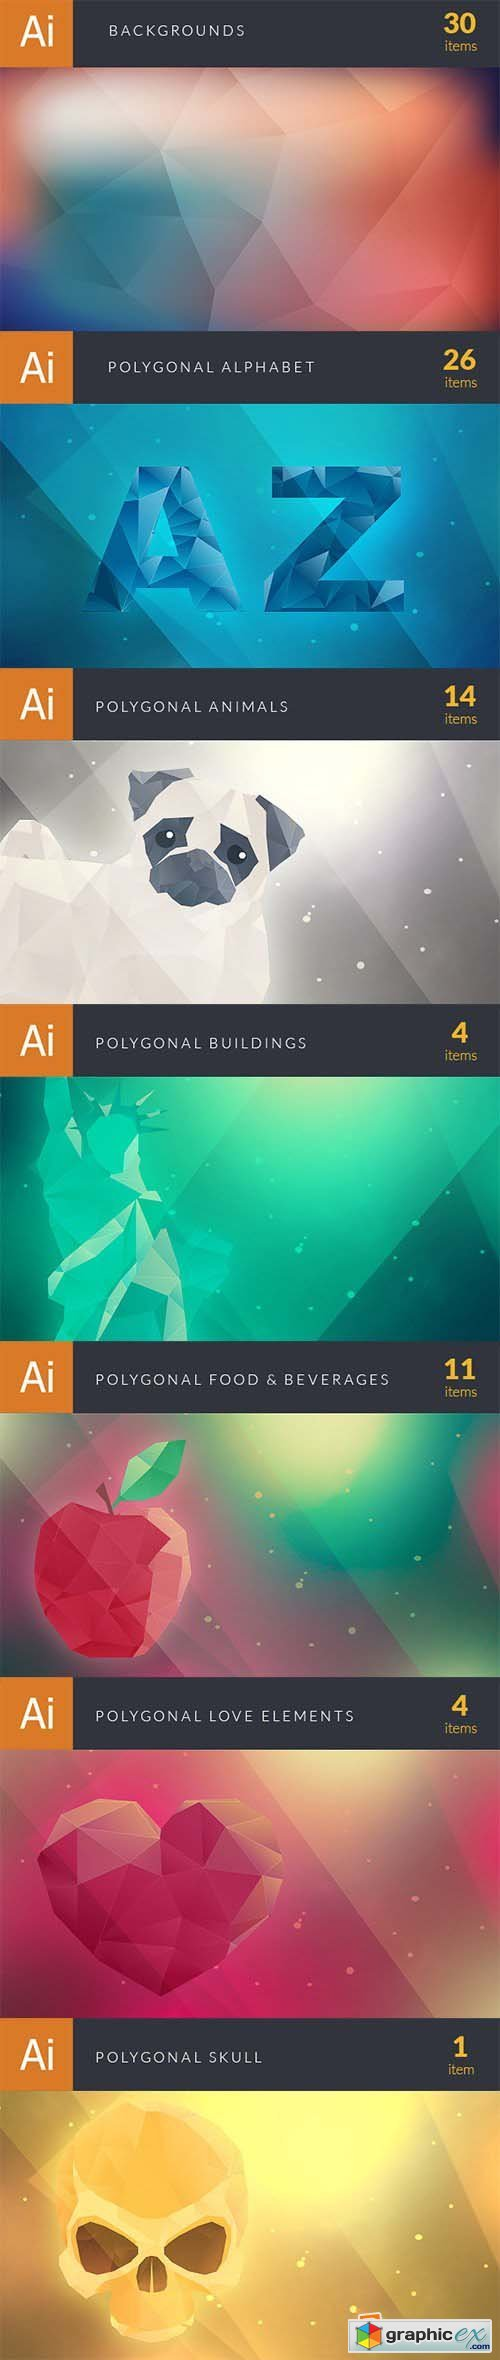 Super Premium Polygonal Vector Elements Bundle